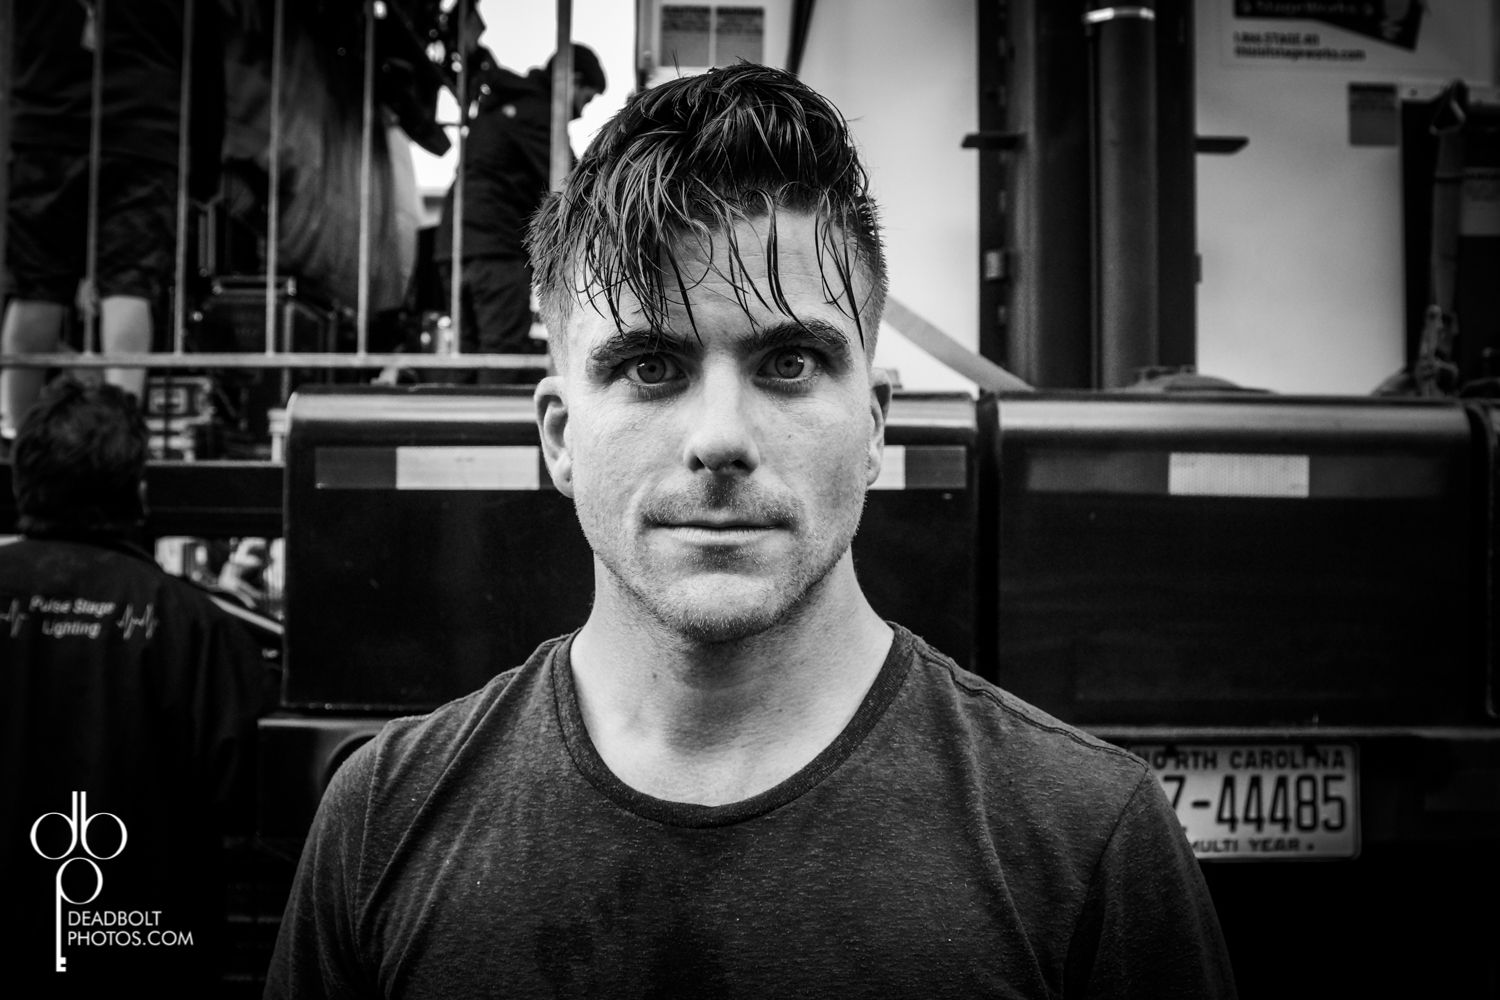 Anthony Green Circa Survive, May 2014 #deadboltphotos #anthonygreen #makeportraits